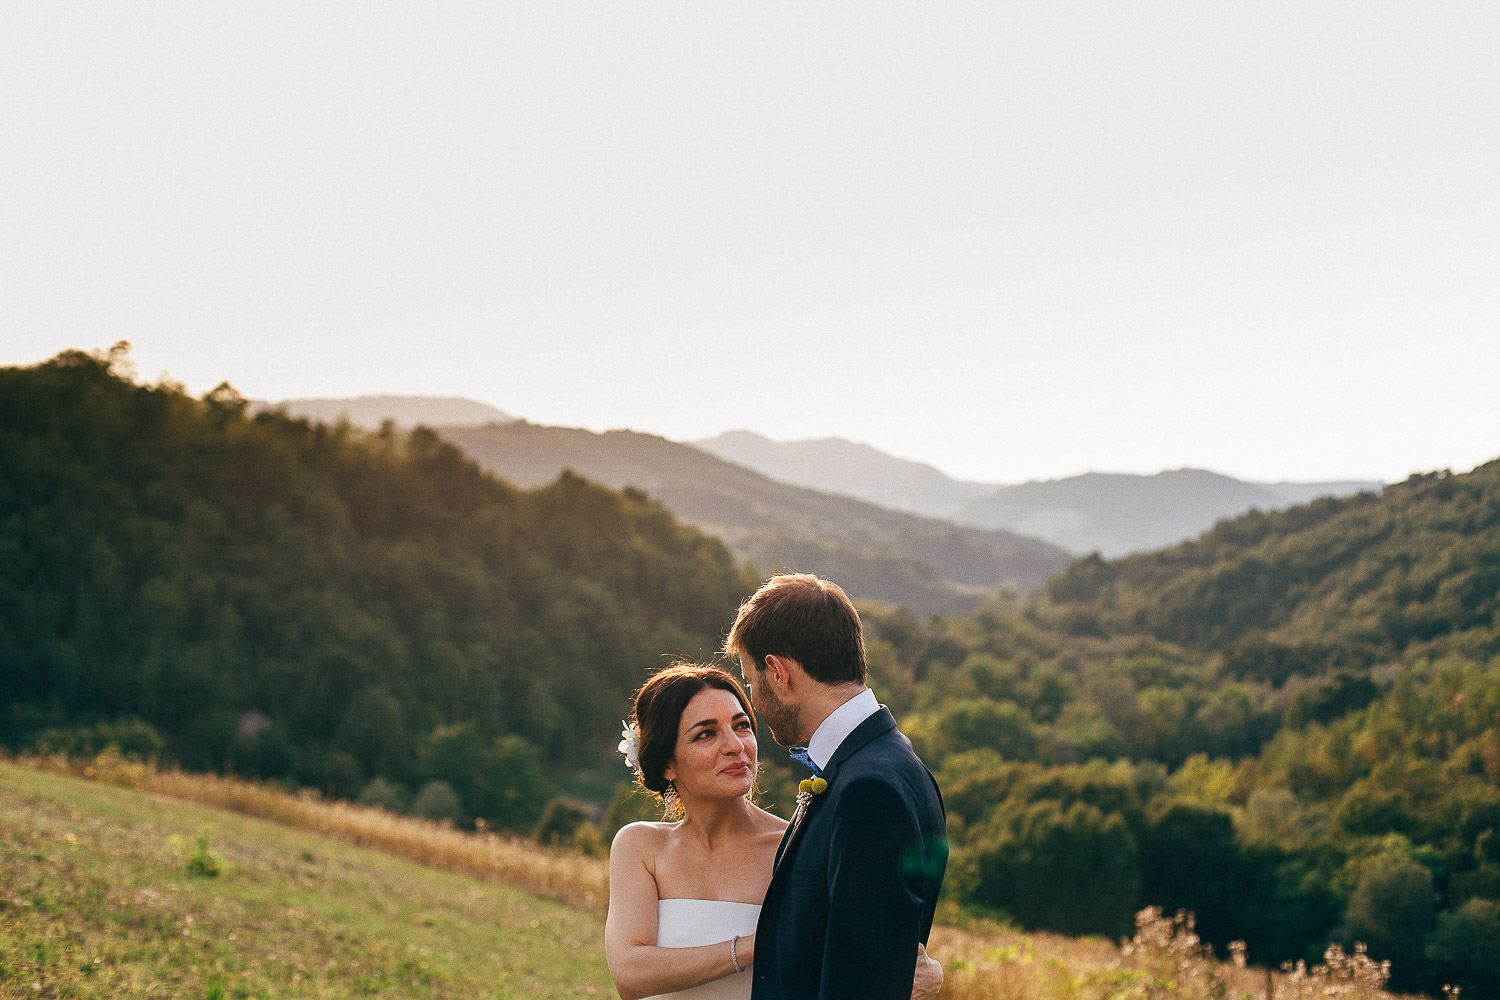 bride-groom-portrait-sunset.jpg